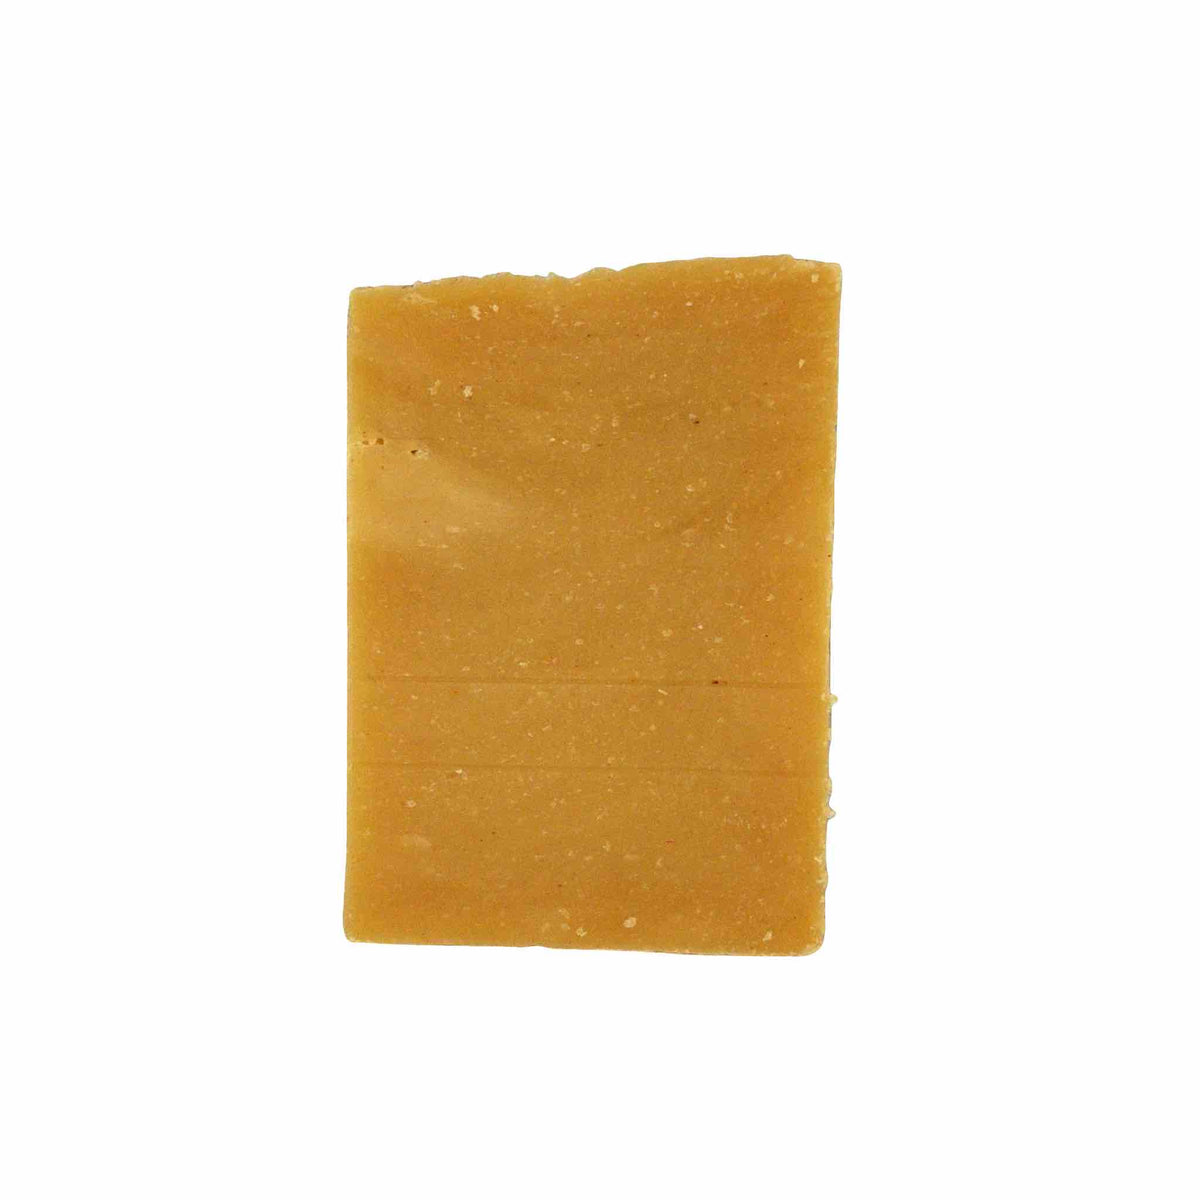 Citrus (Tablet Plain)